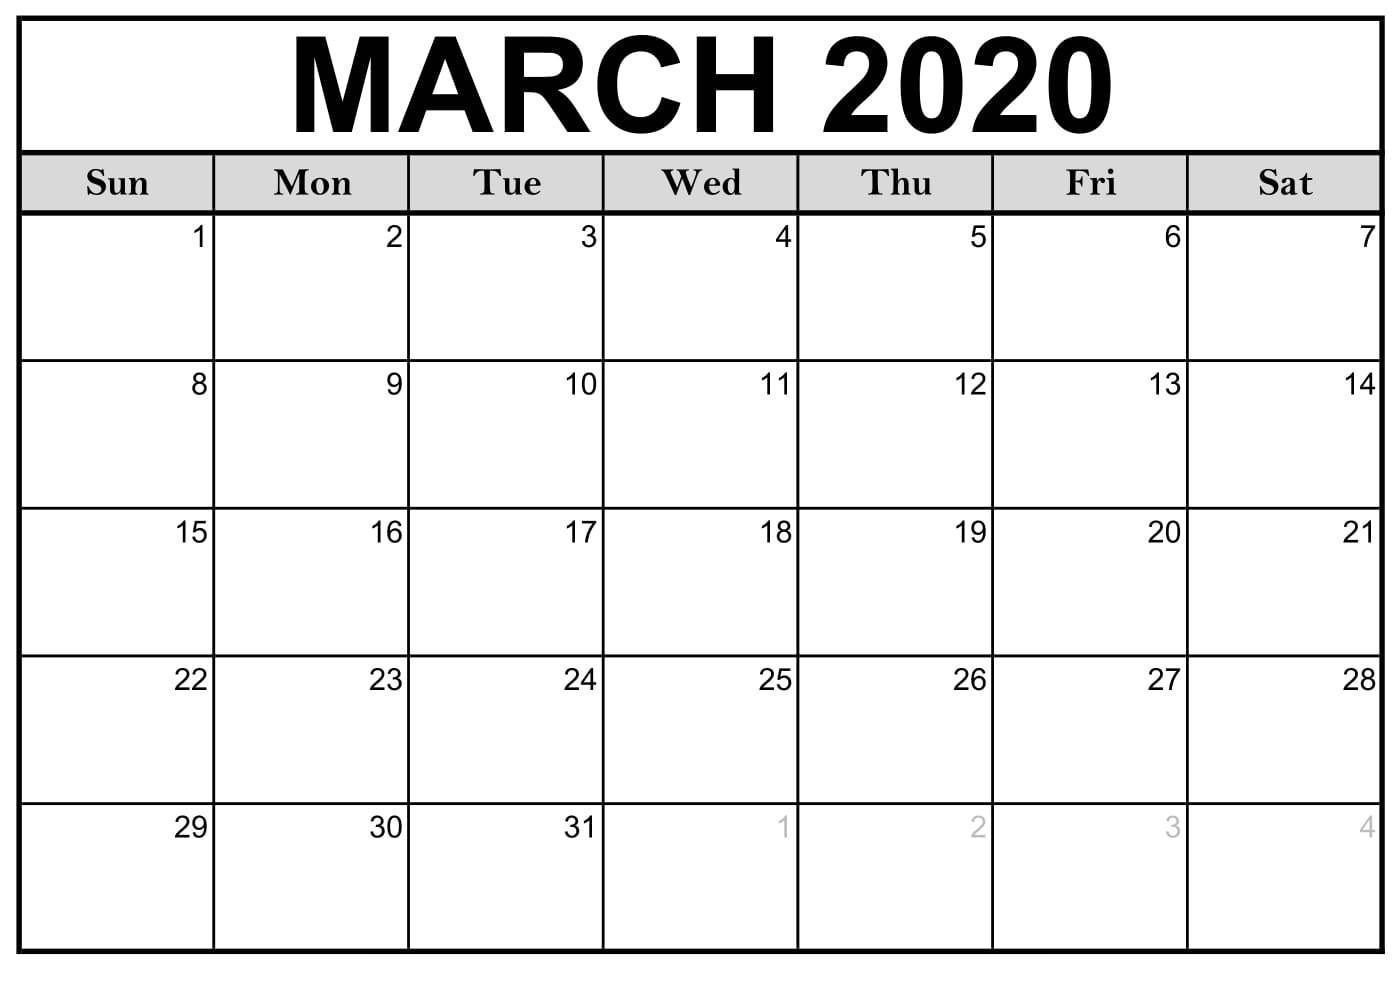 How To I Need A Calendar I Can Edit And Print Out Free In Calender That Yopu Can Eedit